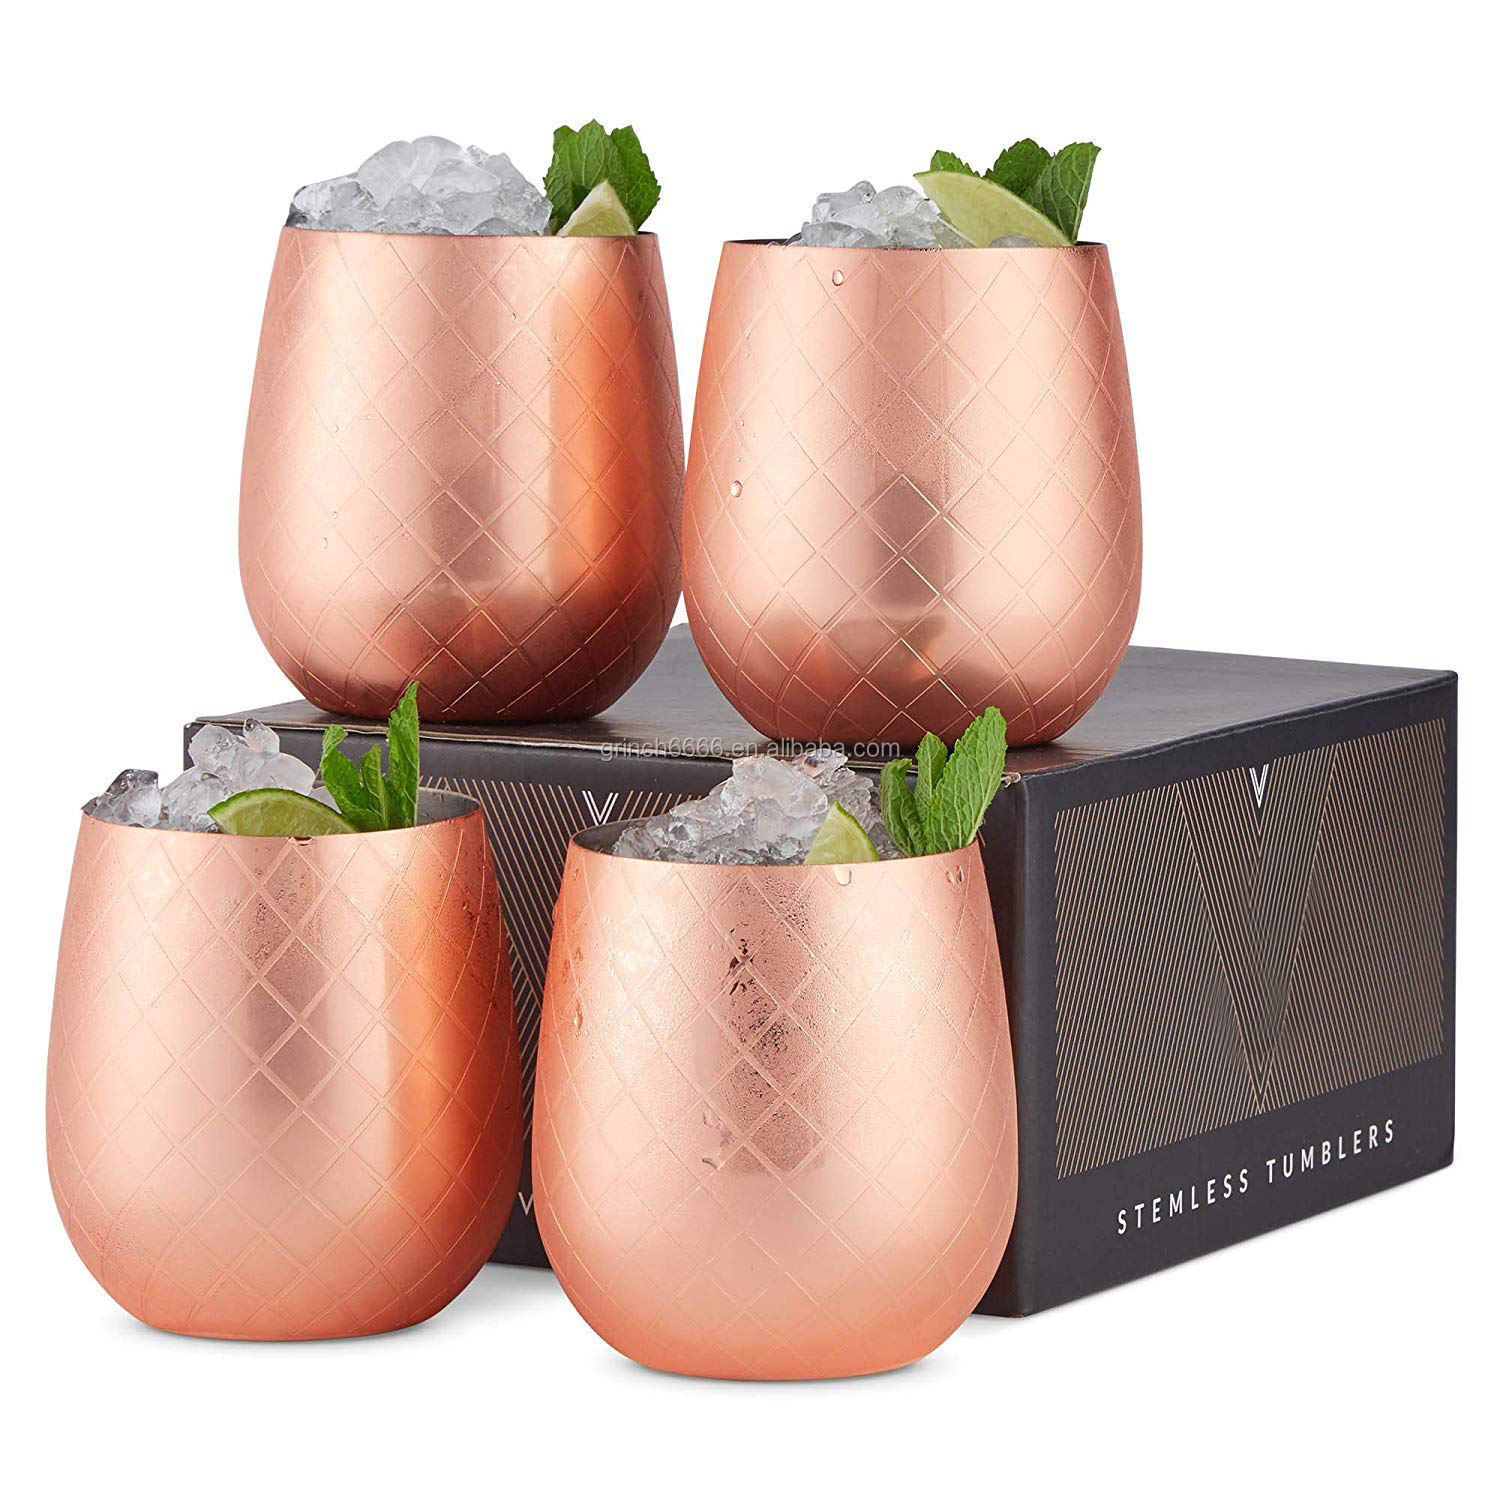 Etched Copper Stemless Wine Glasses Stainless Steel Tumblers, 12oz Cups Set of 4 Wine Drinks Tumbler